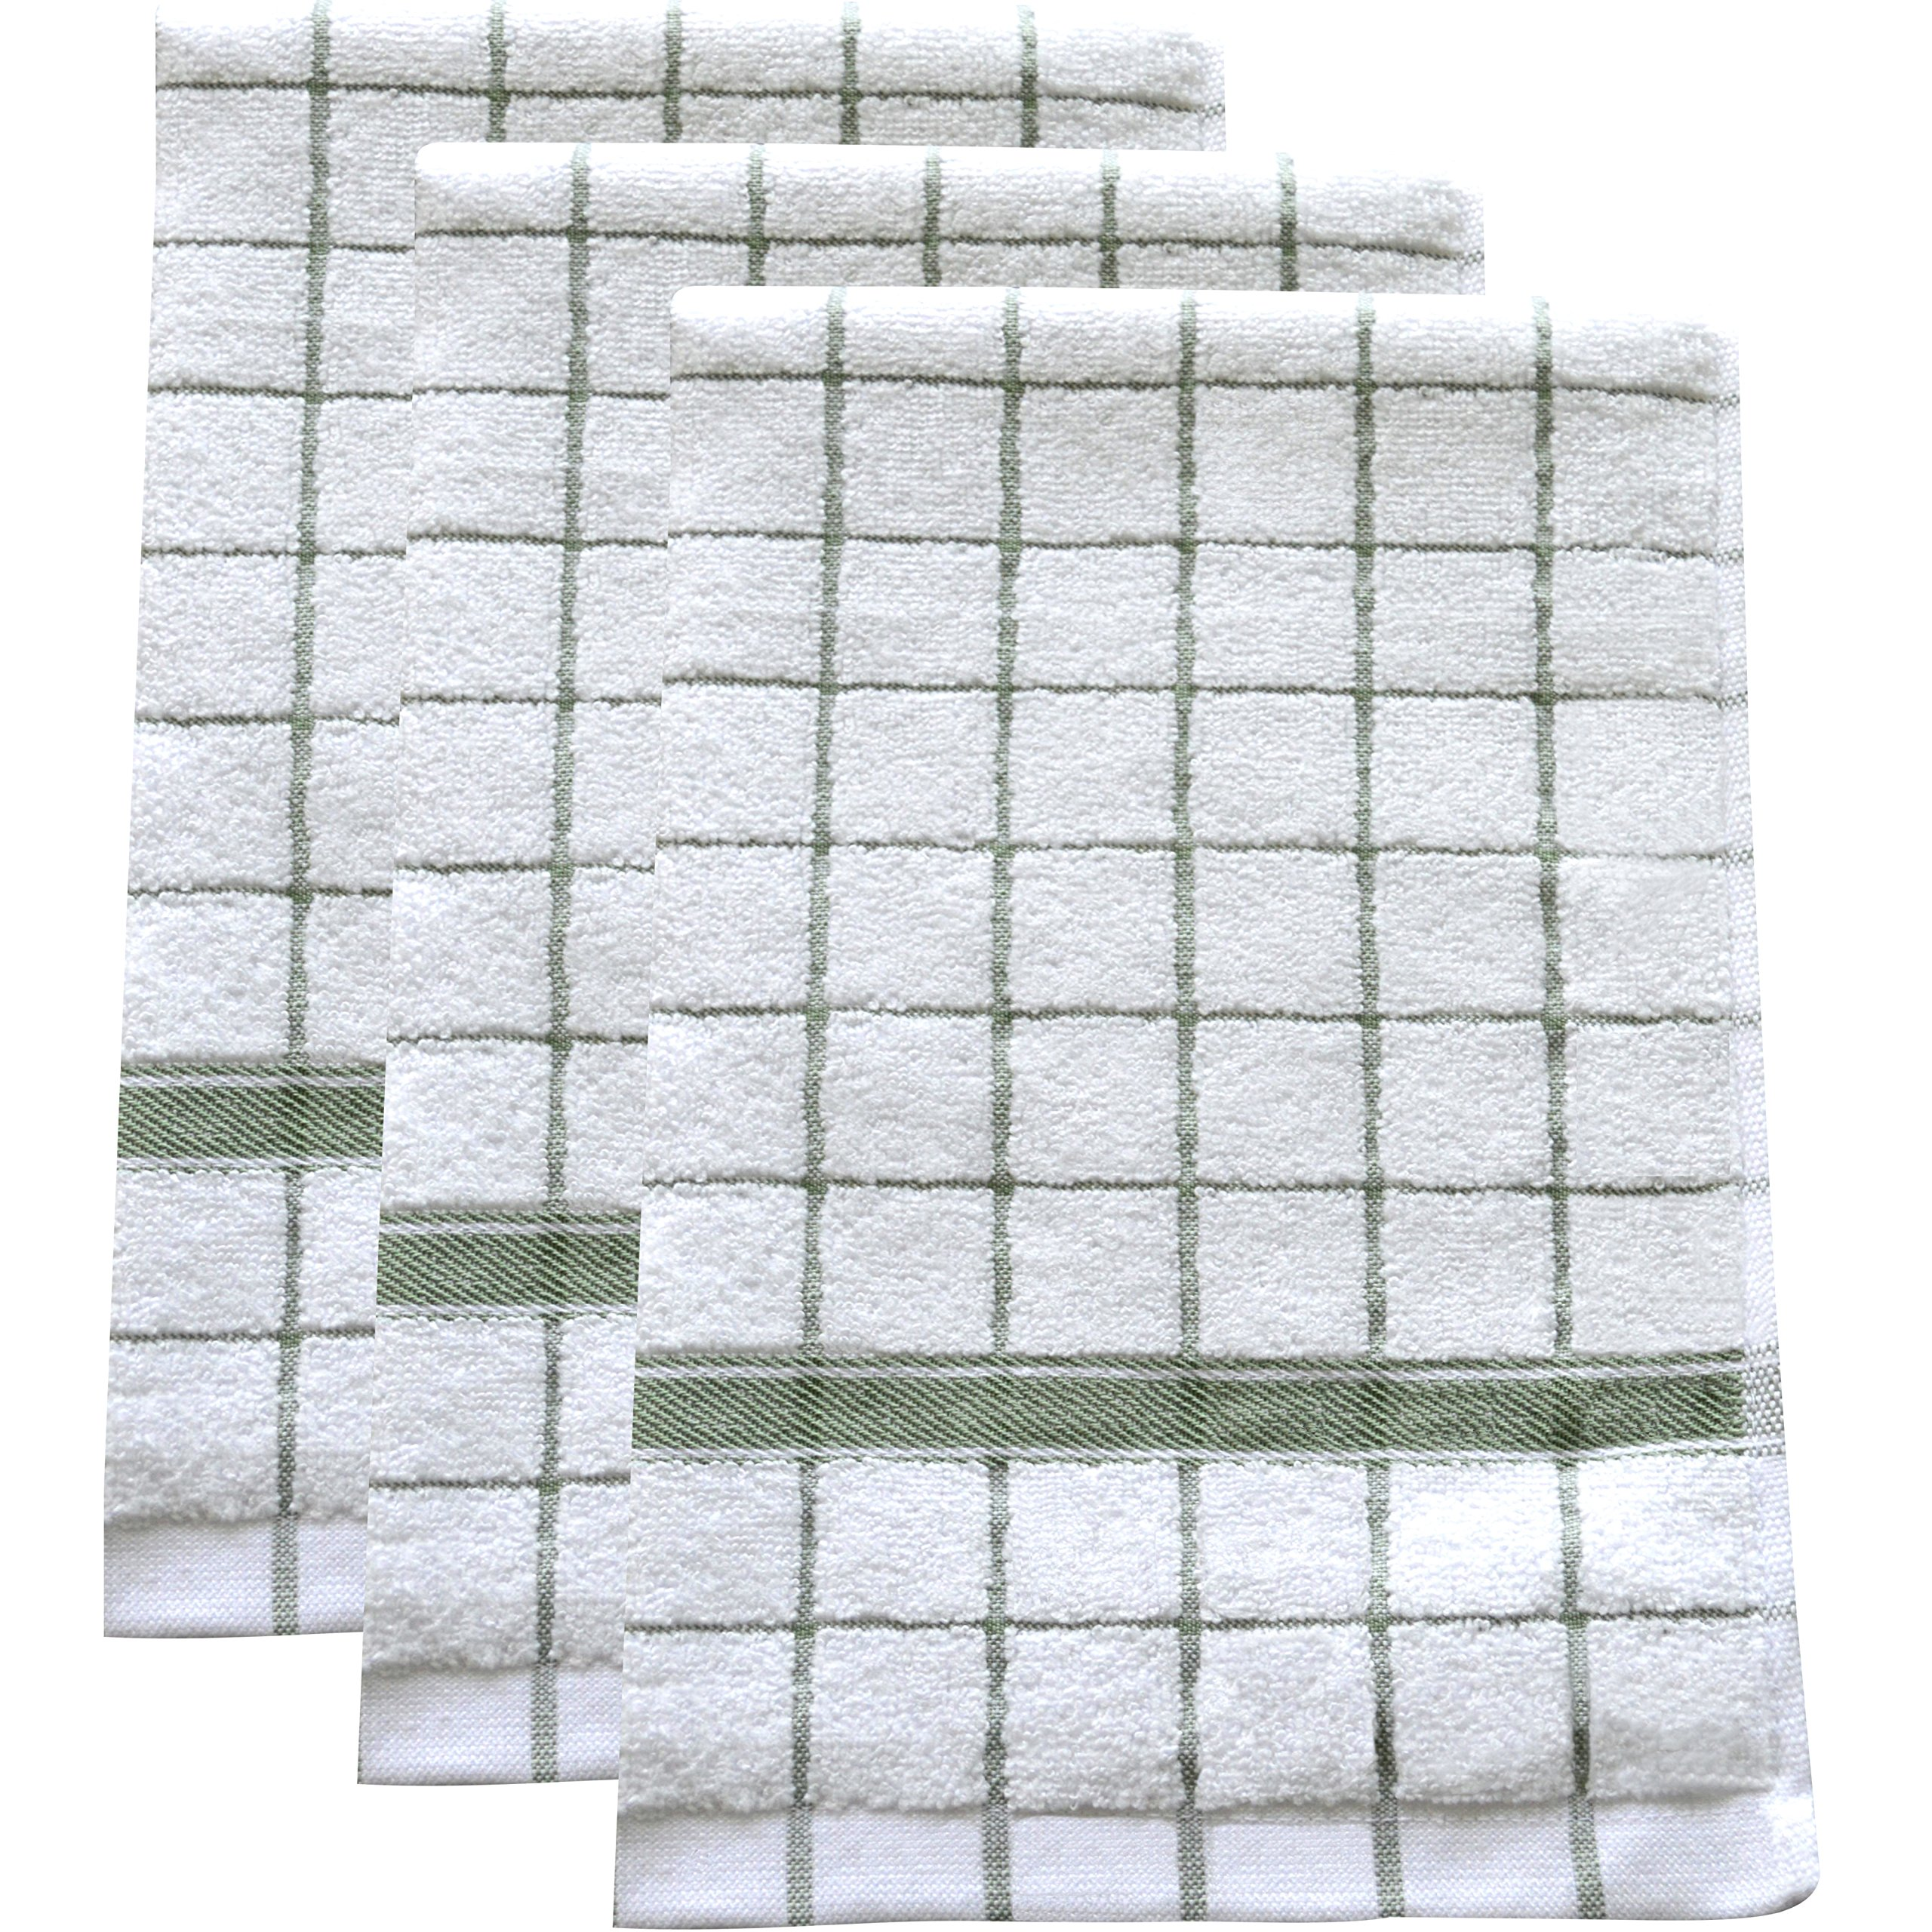 Ultra Absorbent, Quick-Drying Kitchen Dish Towels (Set of 3) | Premium Microfiber & Cotton Blend Hand Towels for Cleaning, Scrubbing, Washing, and Drying | Durable Reinforced Edges | 23'' X 16'' Green by Fabresh